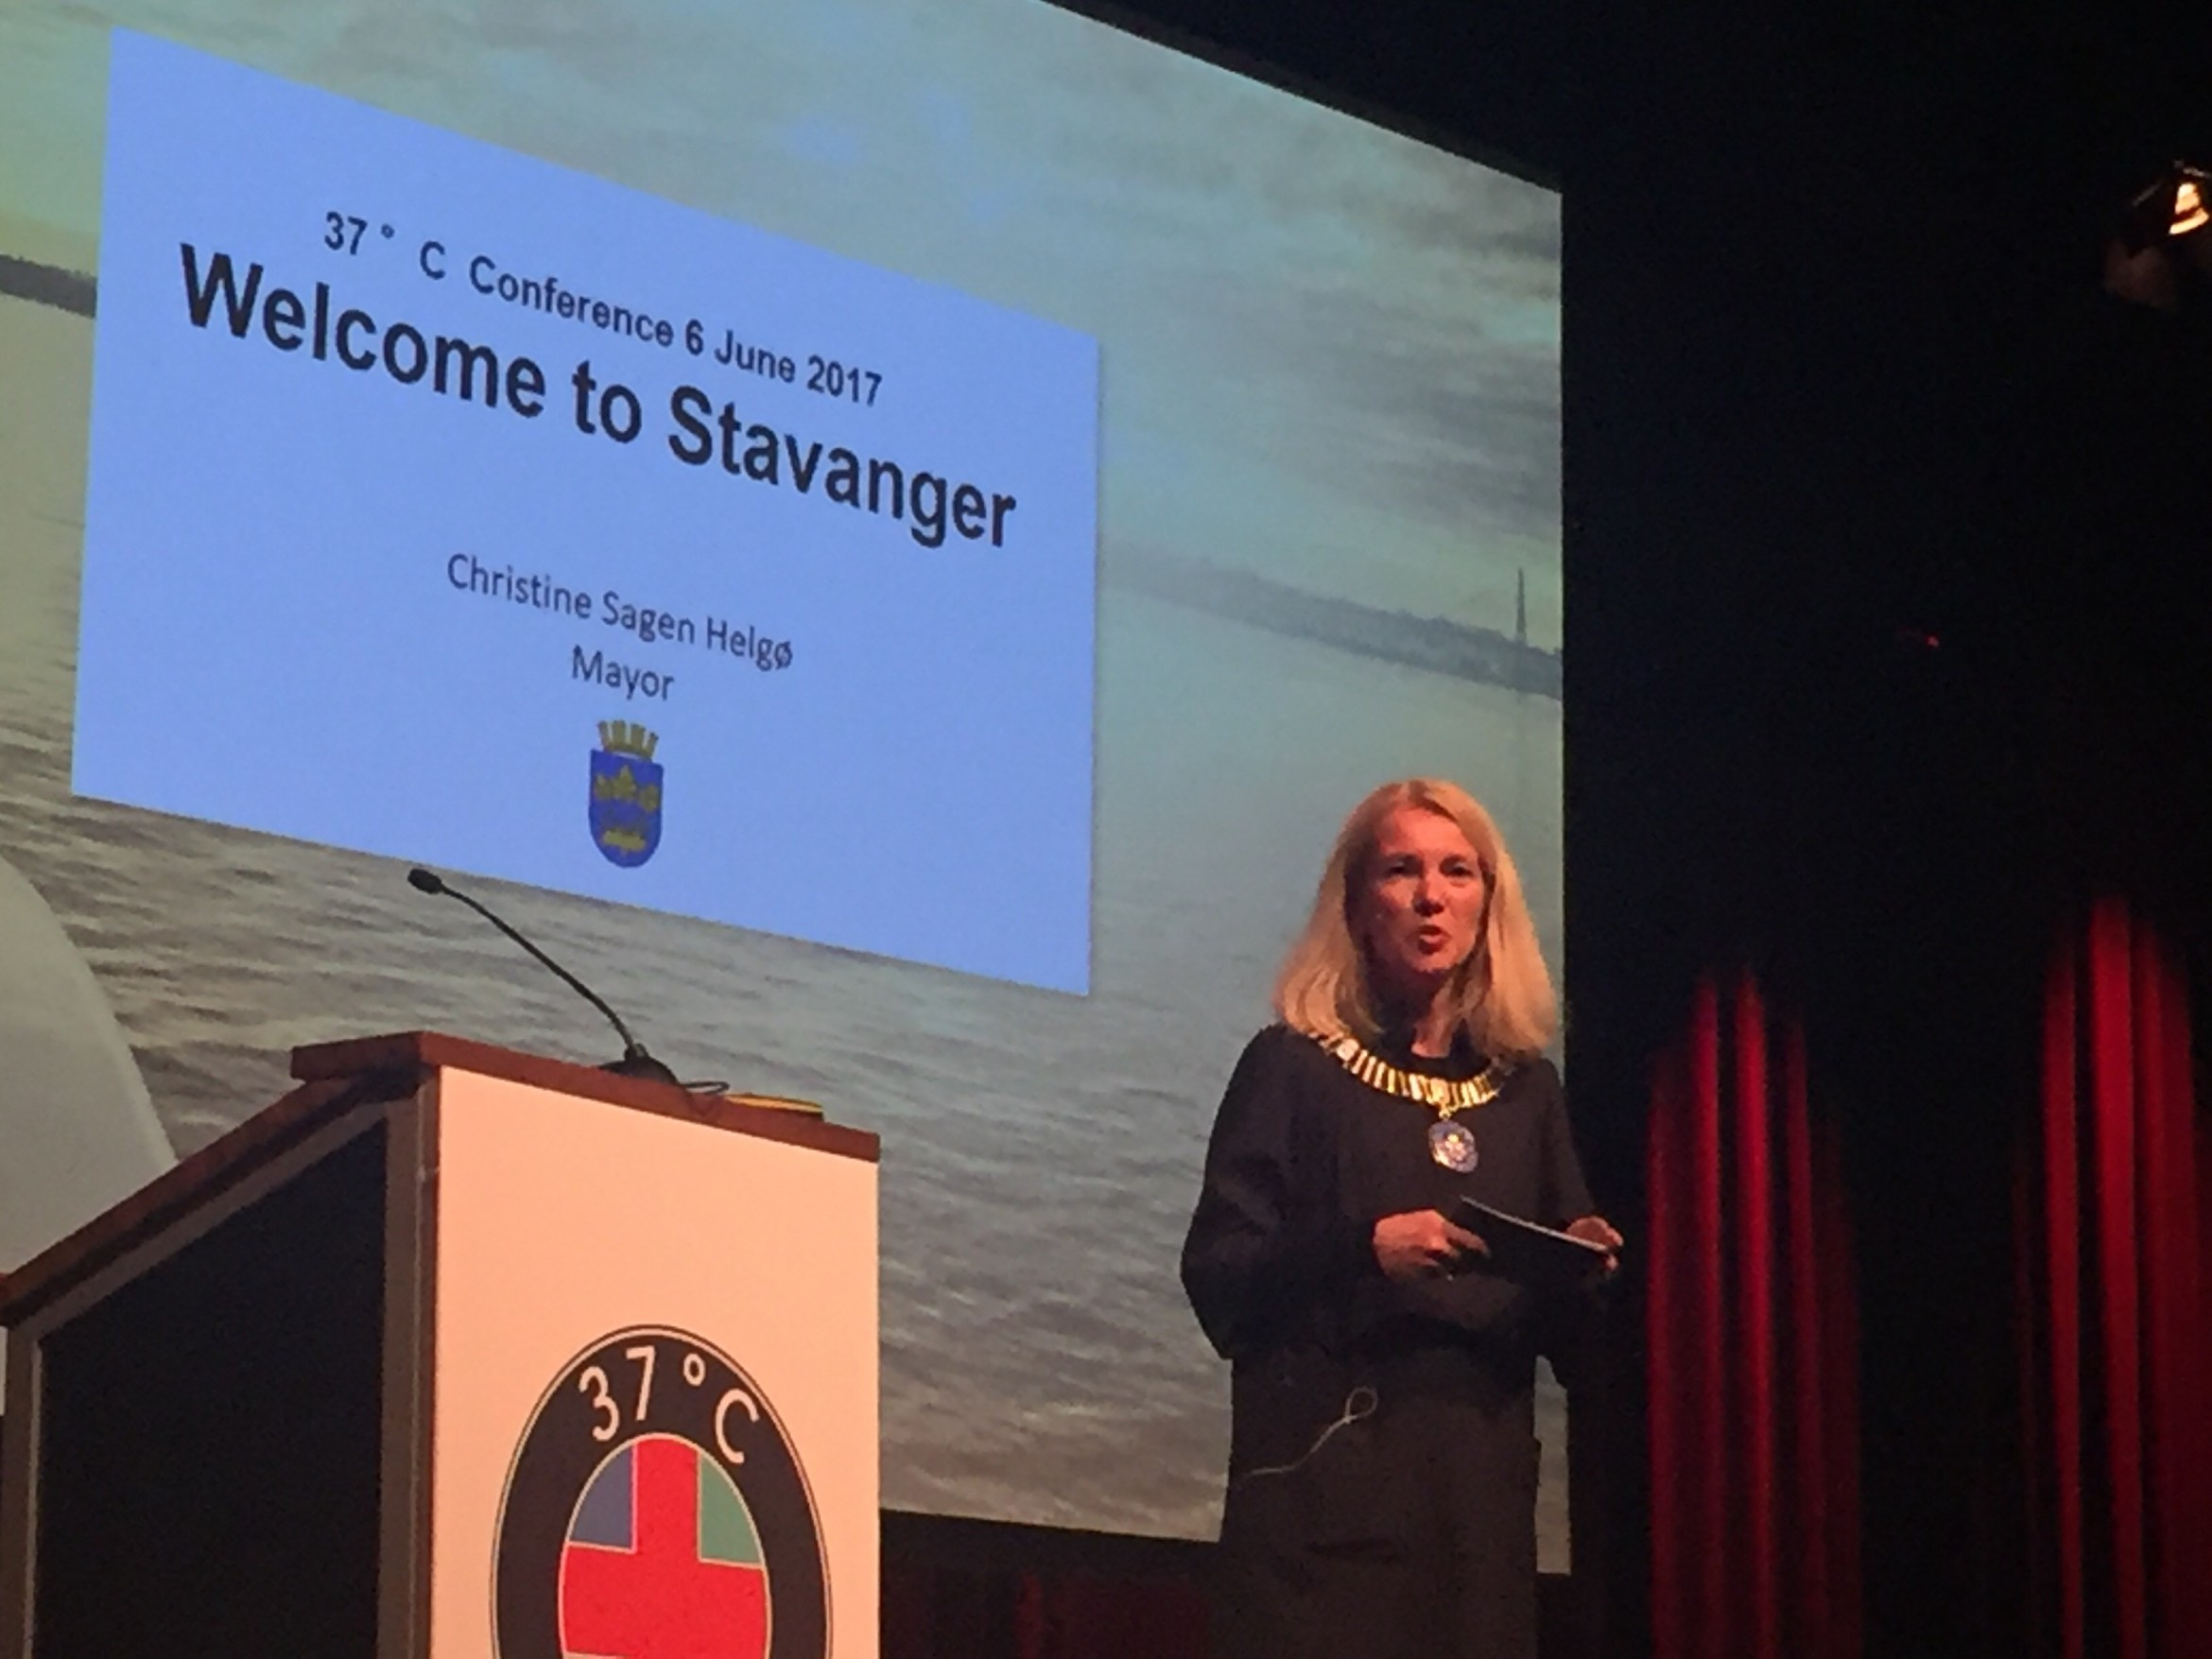 Mayor-of-Stavnger-Christine-Sagen-Helgo-at-37degreesC